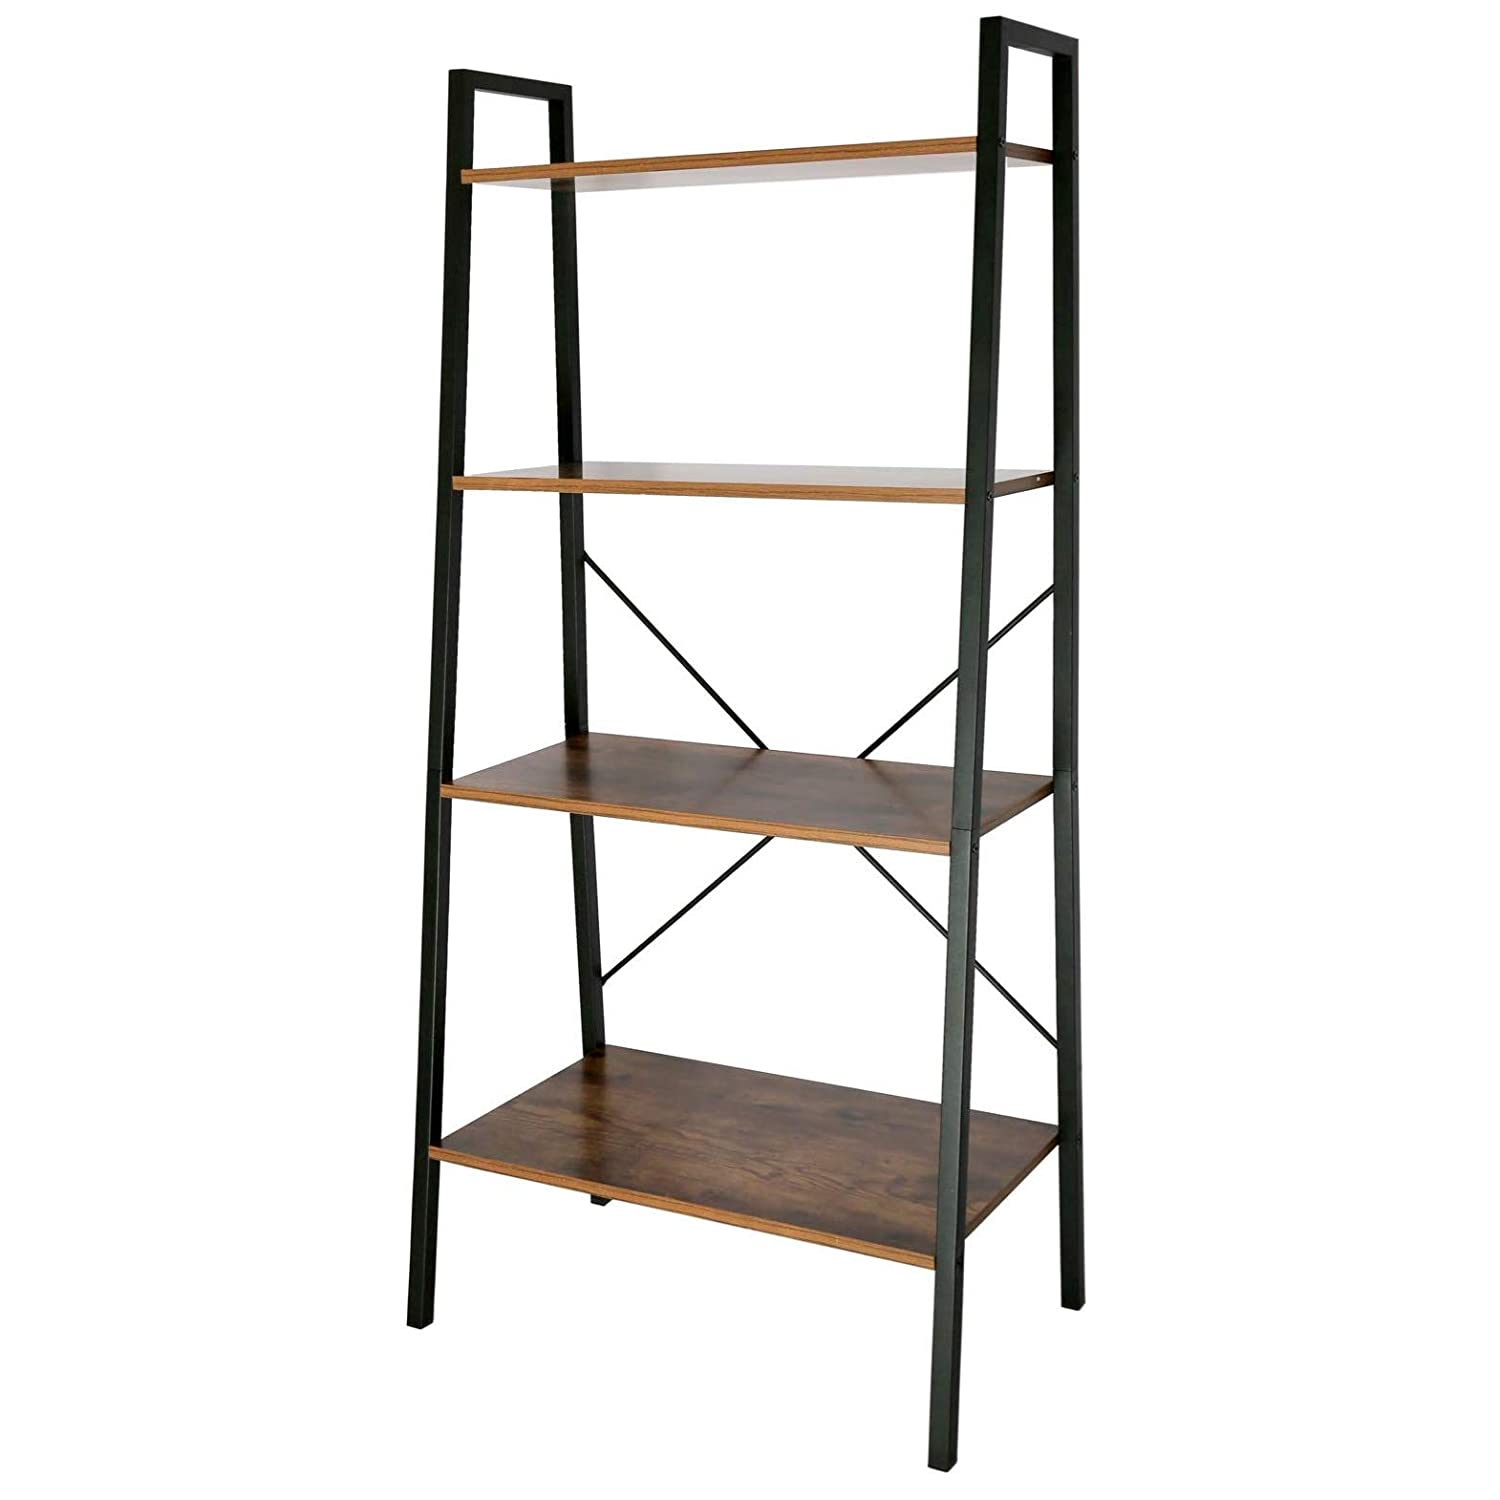 IRONCK Bookshelf, 4-Tier Ladder Shelf with MDF Board and Stable Thick Metal Frame, Stable and Durable High Resistance to Scratch Storage Shelves for Home, Office, Bathroom, Living Room